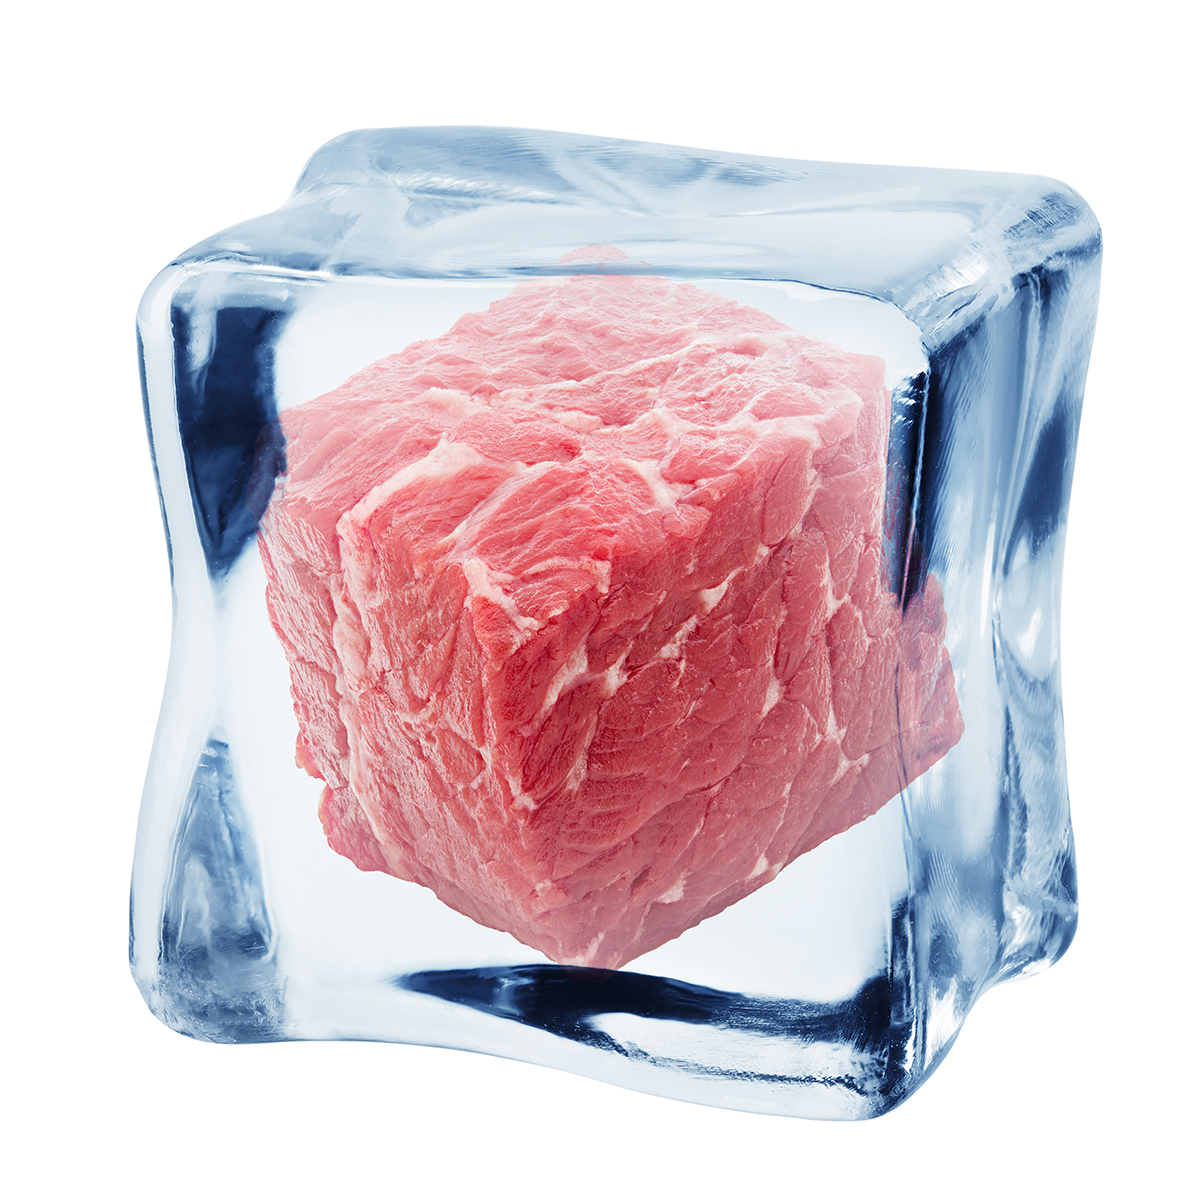 meat, beef in ice cube, isolated on white background, clipping path, full depth of field